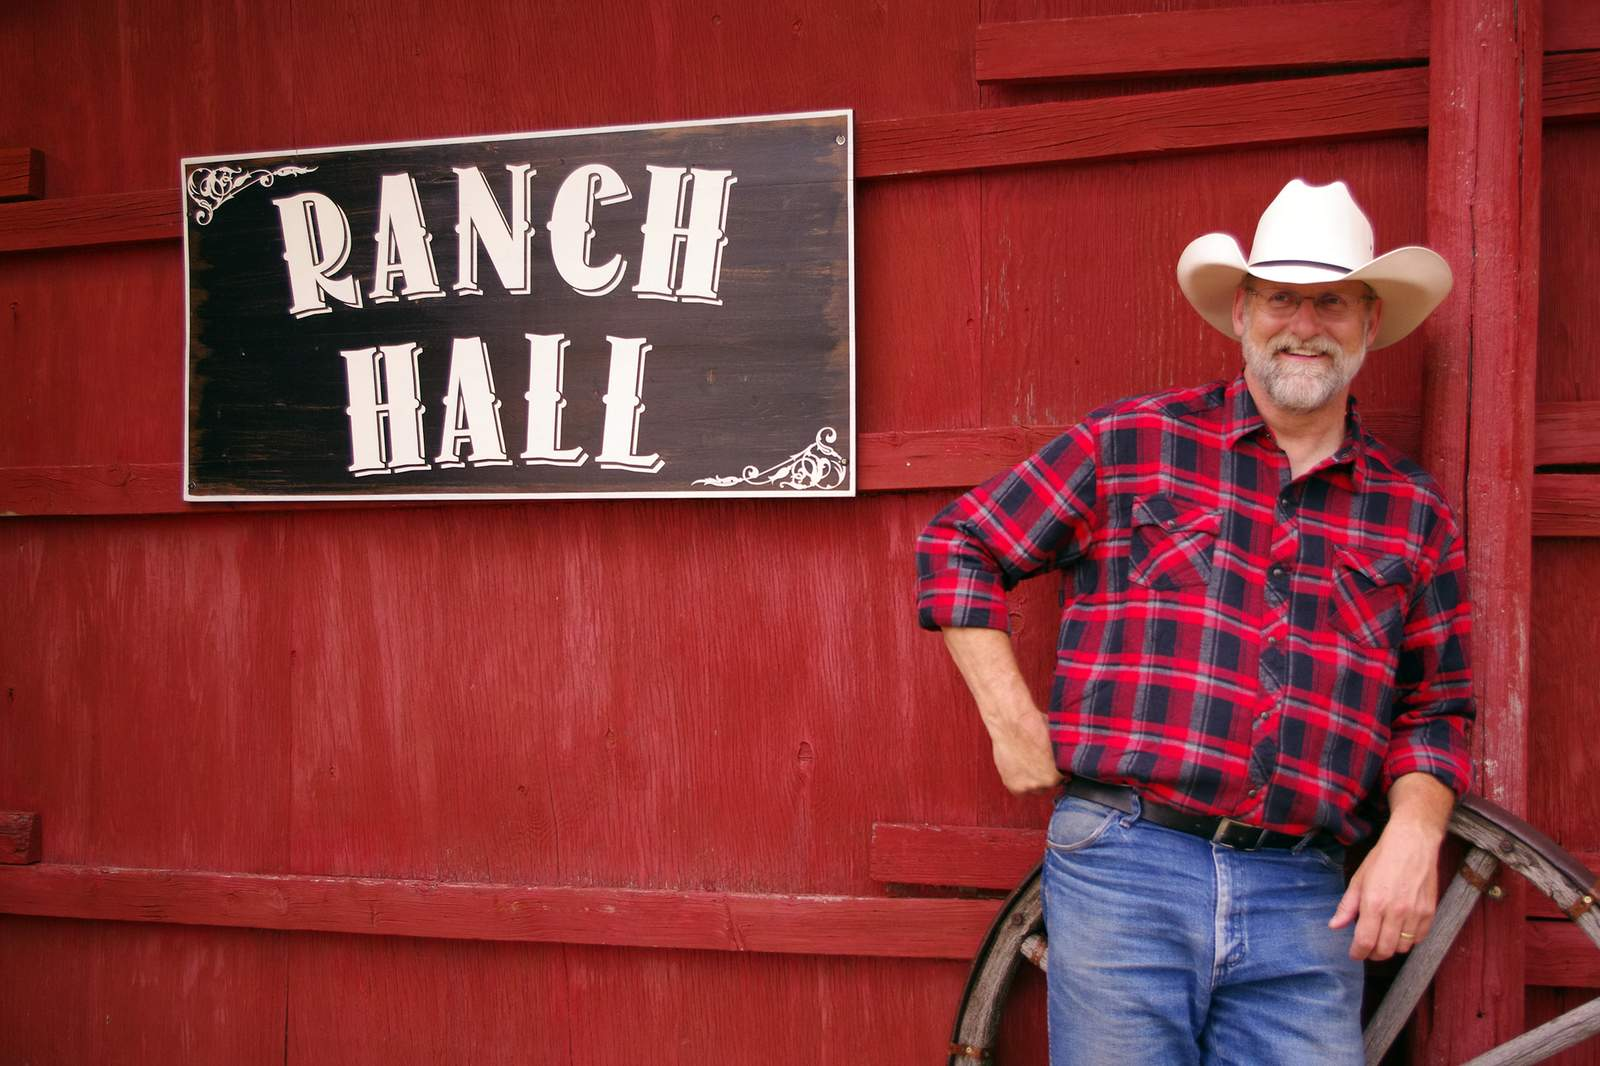 Ranch Hall